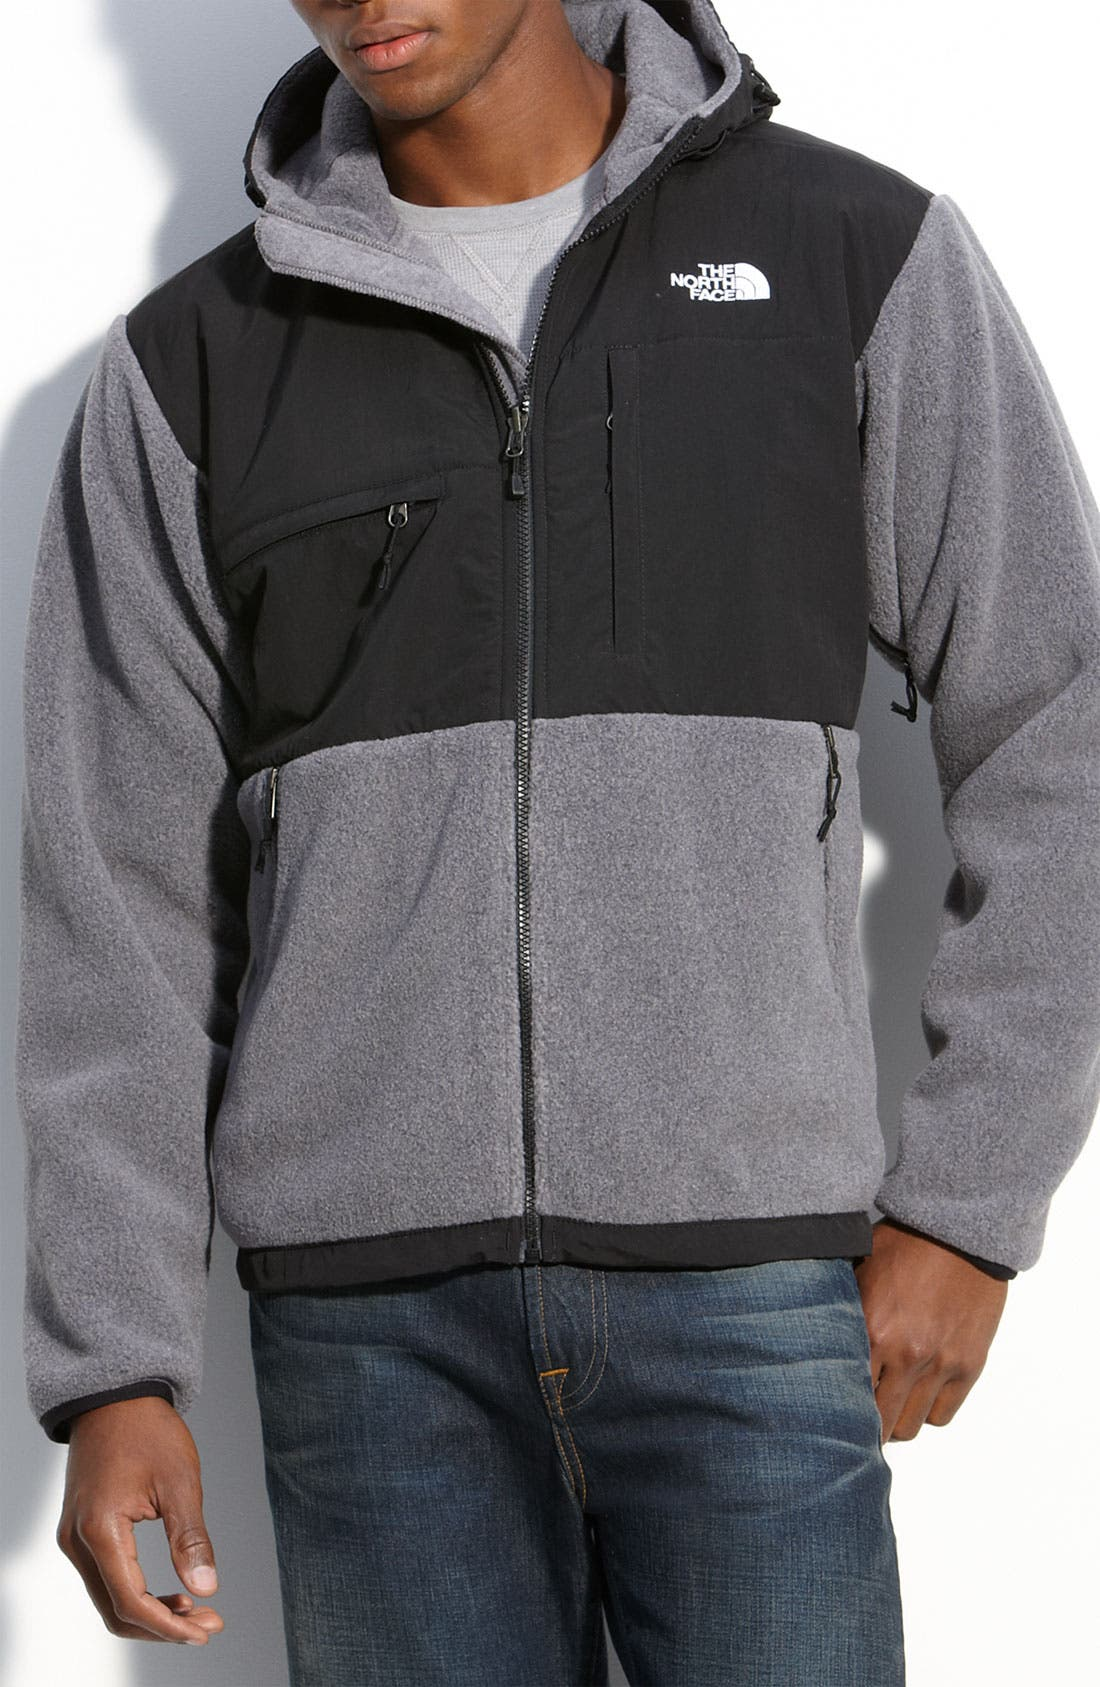 Alternate Image 1 Selected - The North Face 'Denali' Hooded Recycled Fleece Jacket